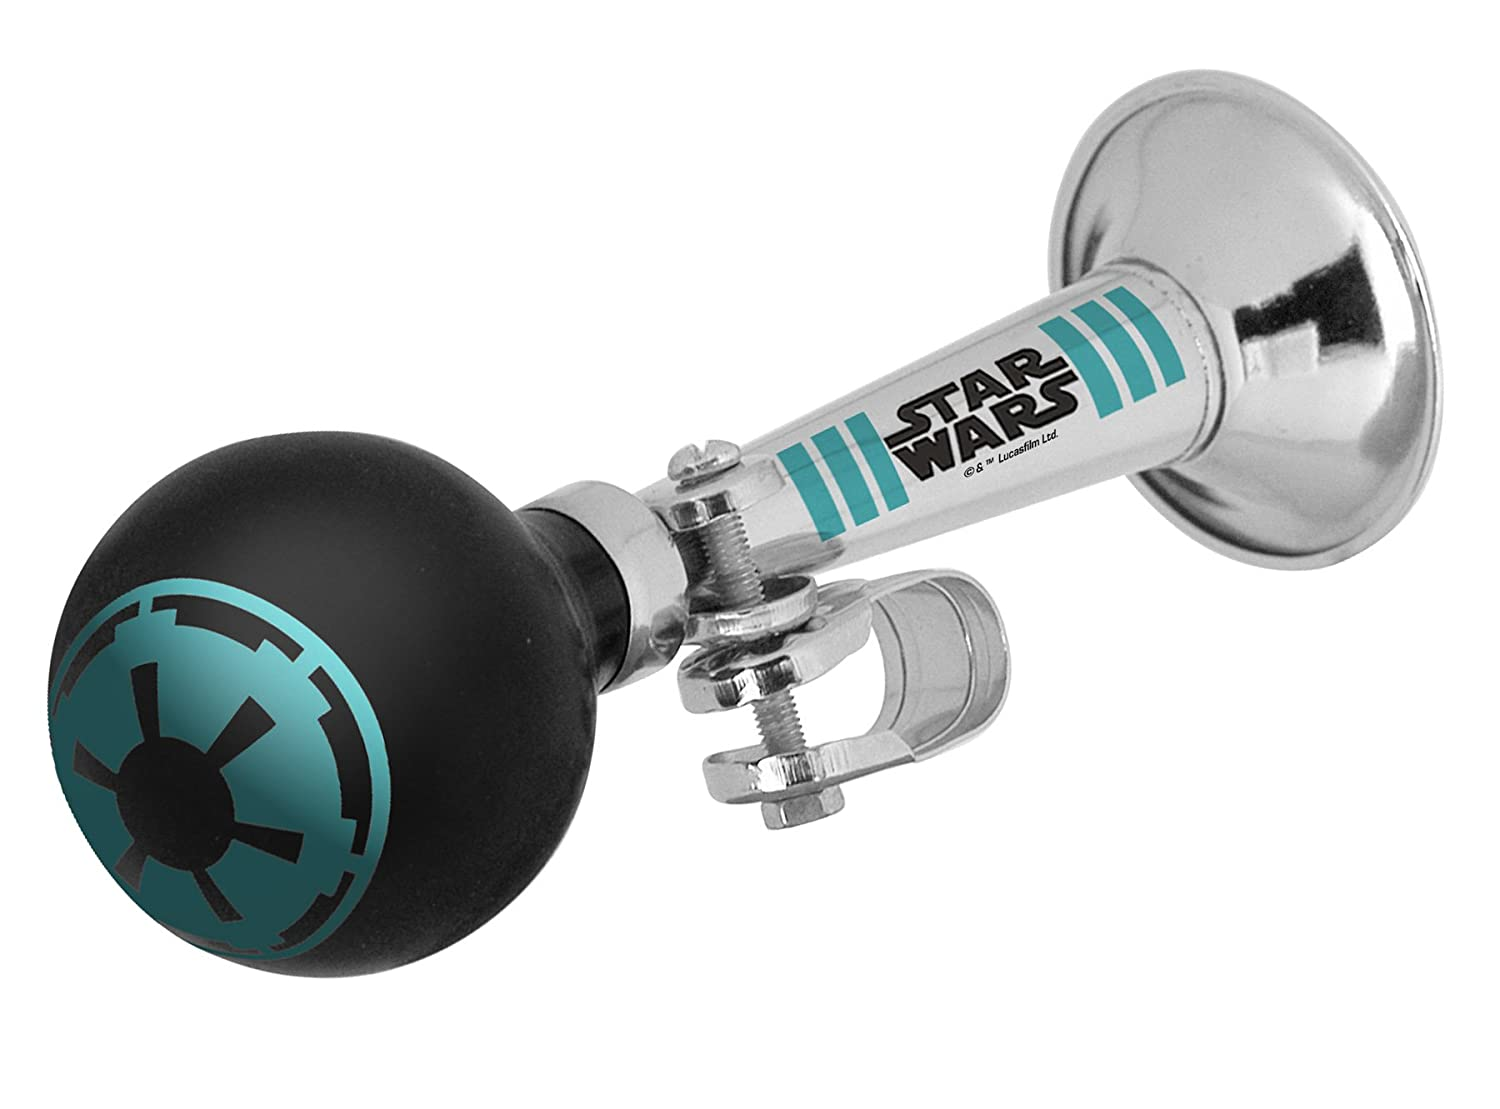 Star Wars bicycle horn